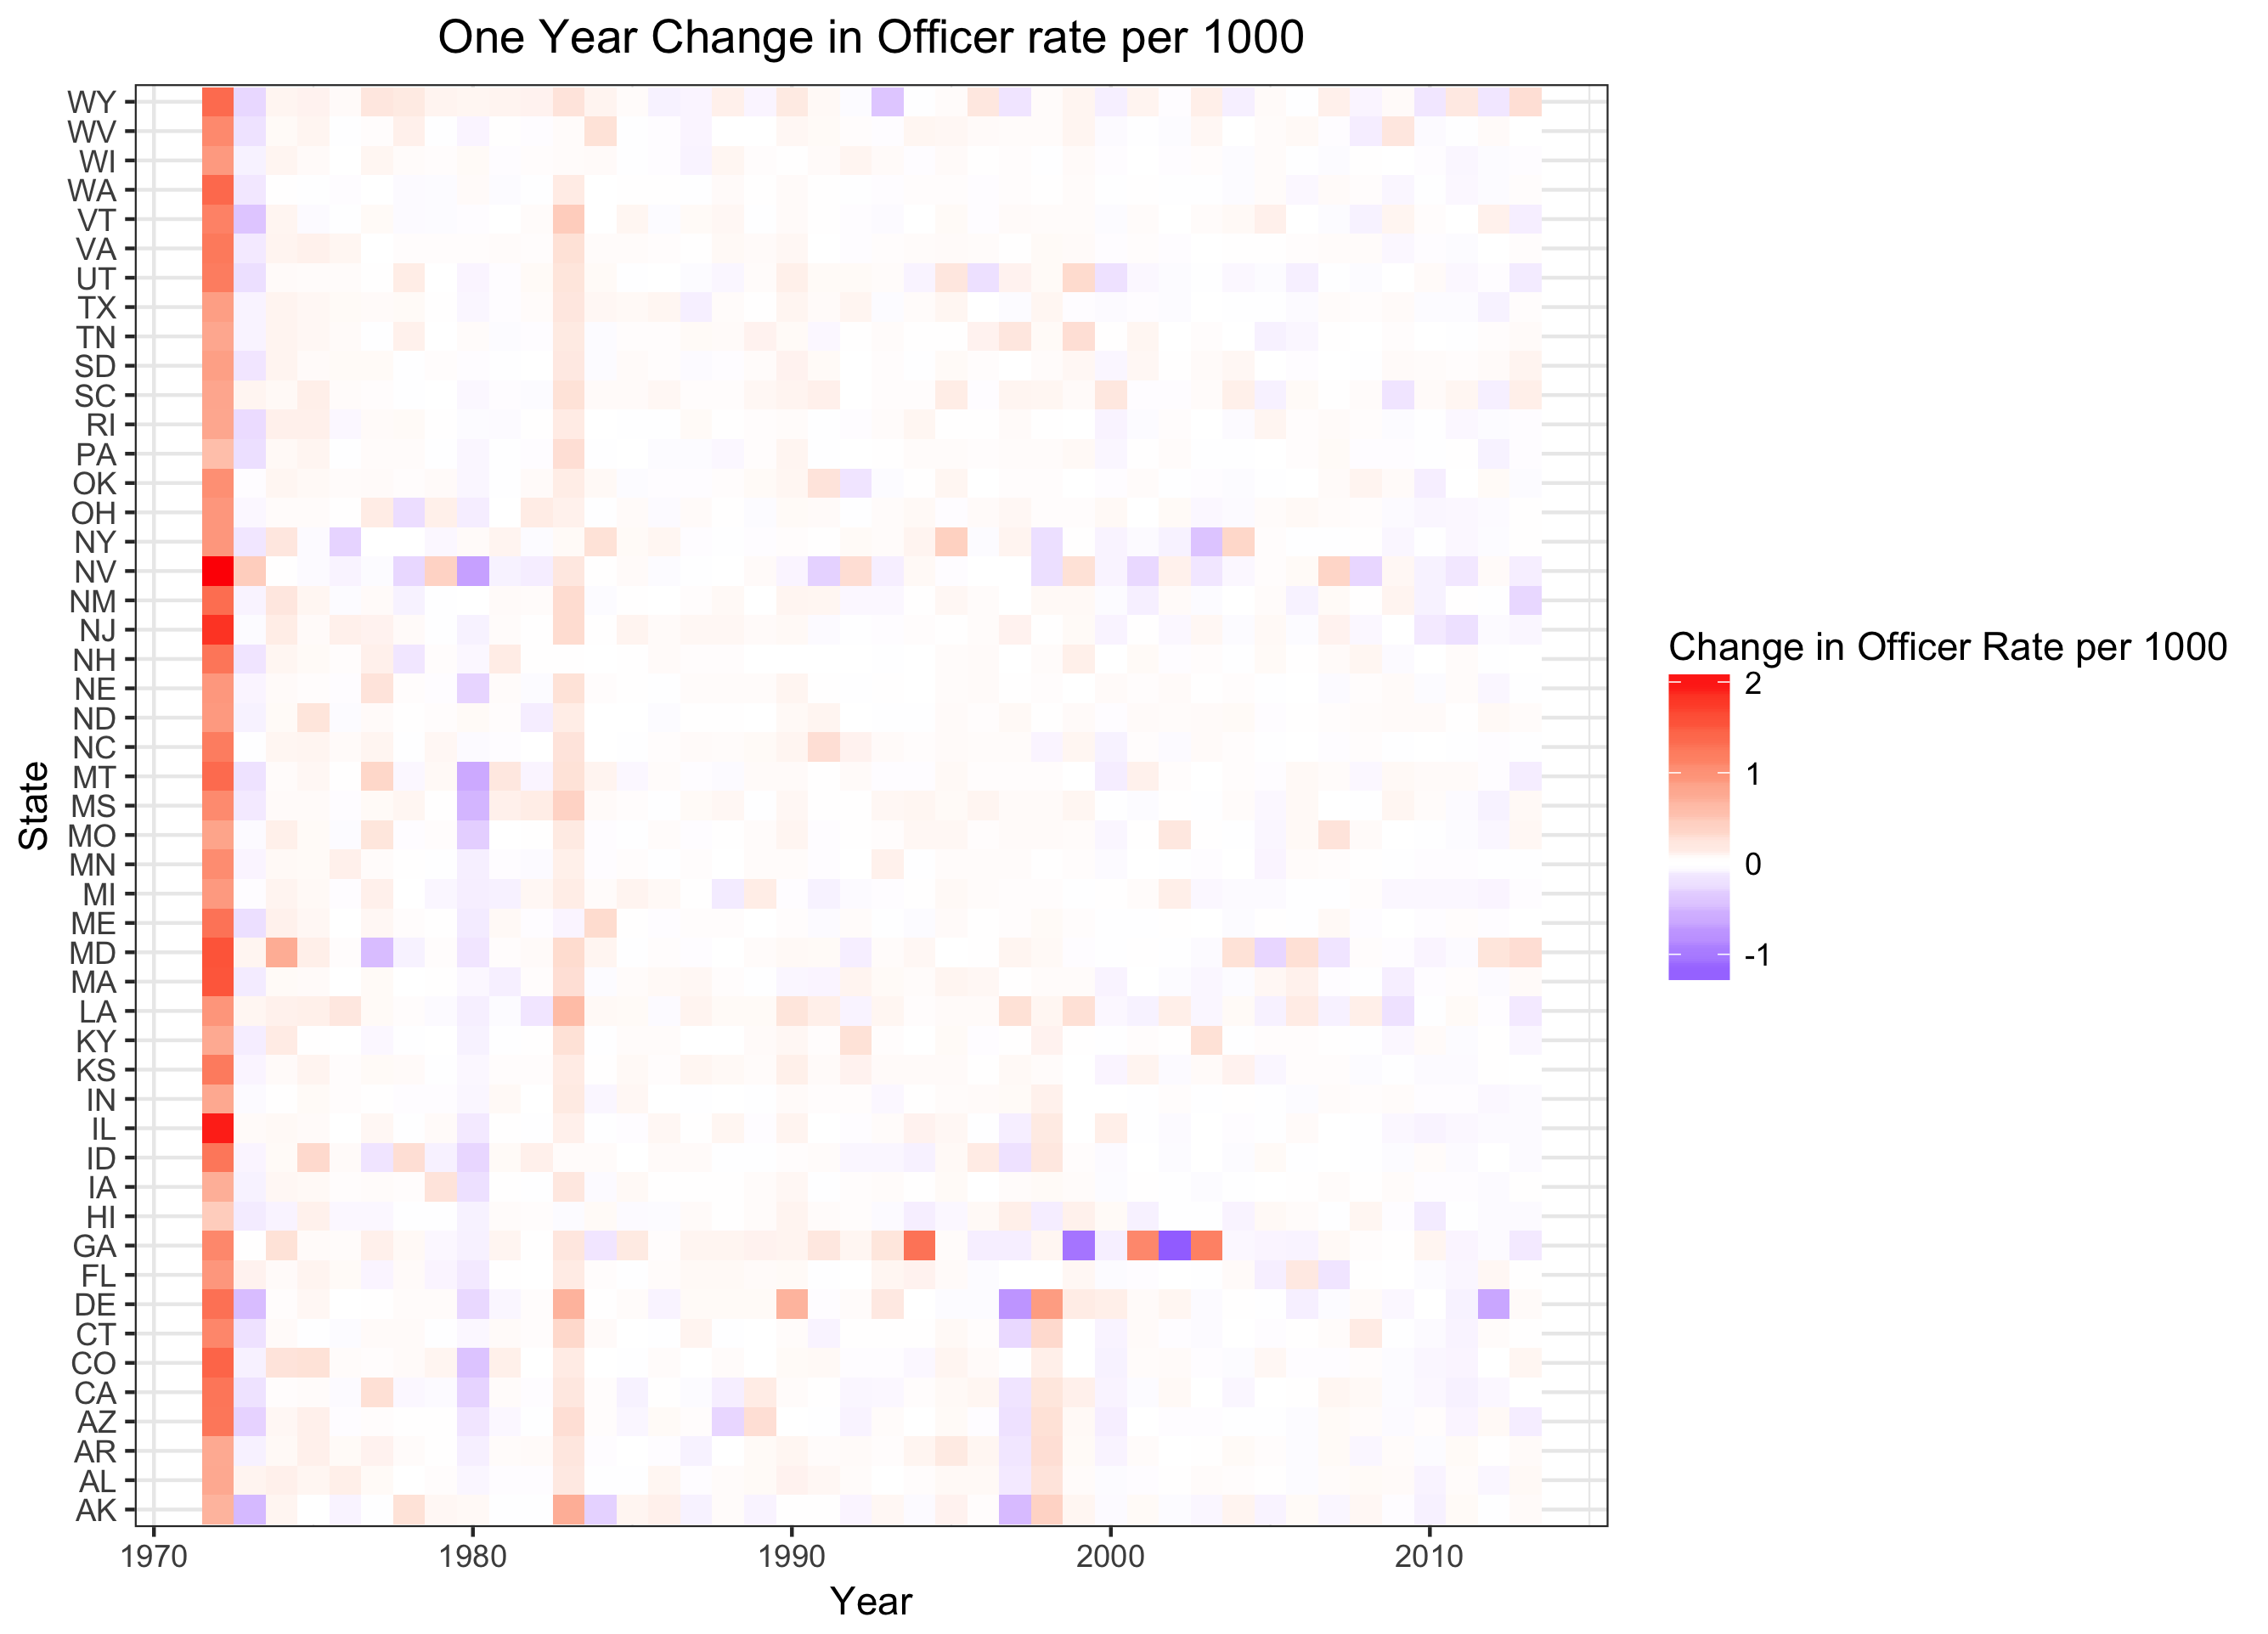 One year change in officers per 1000